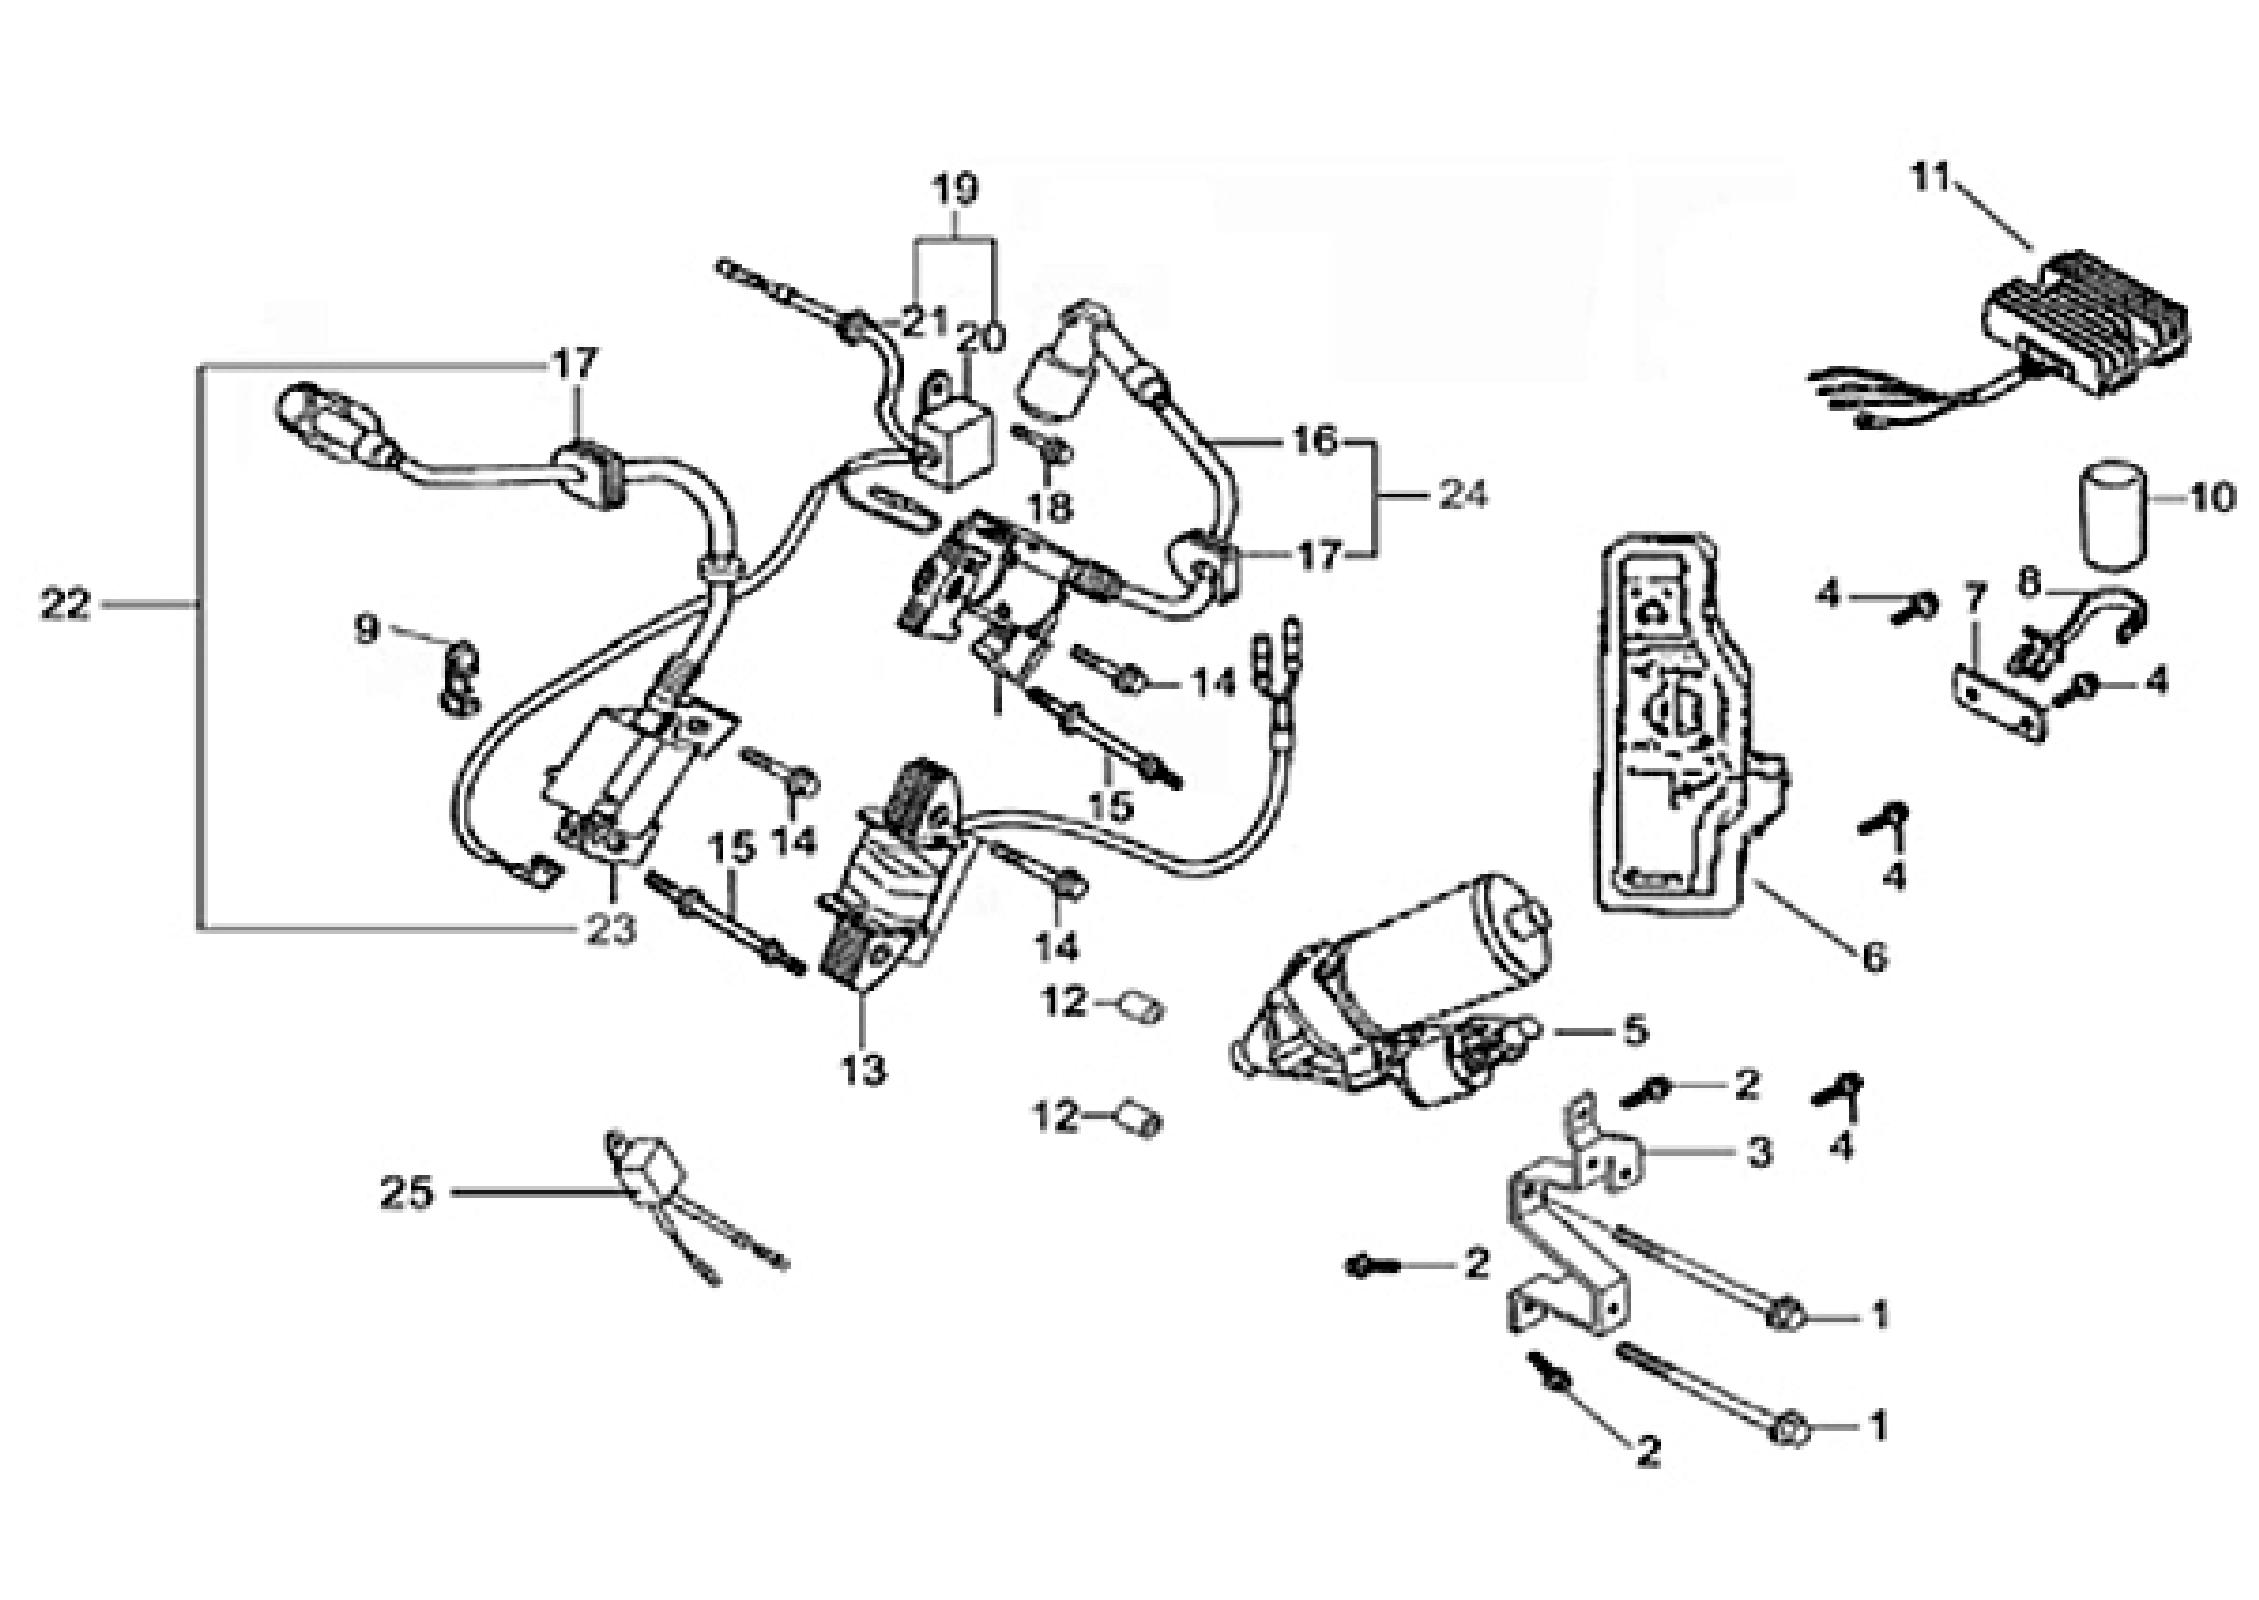 wiring diagram 2002 honda gx340 engine parts